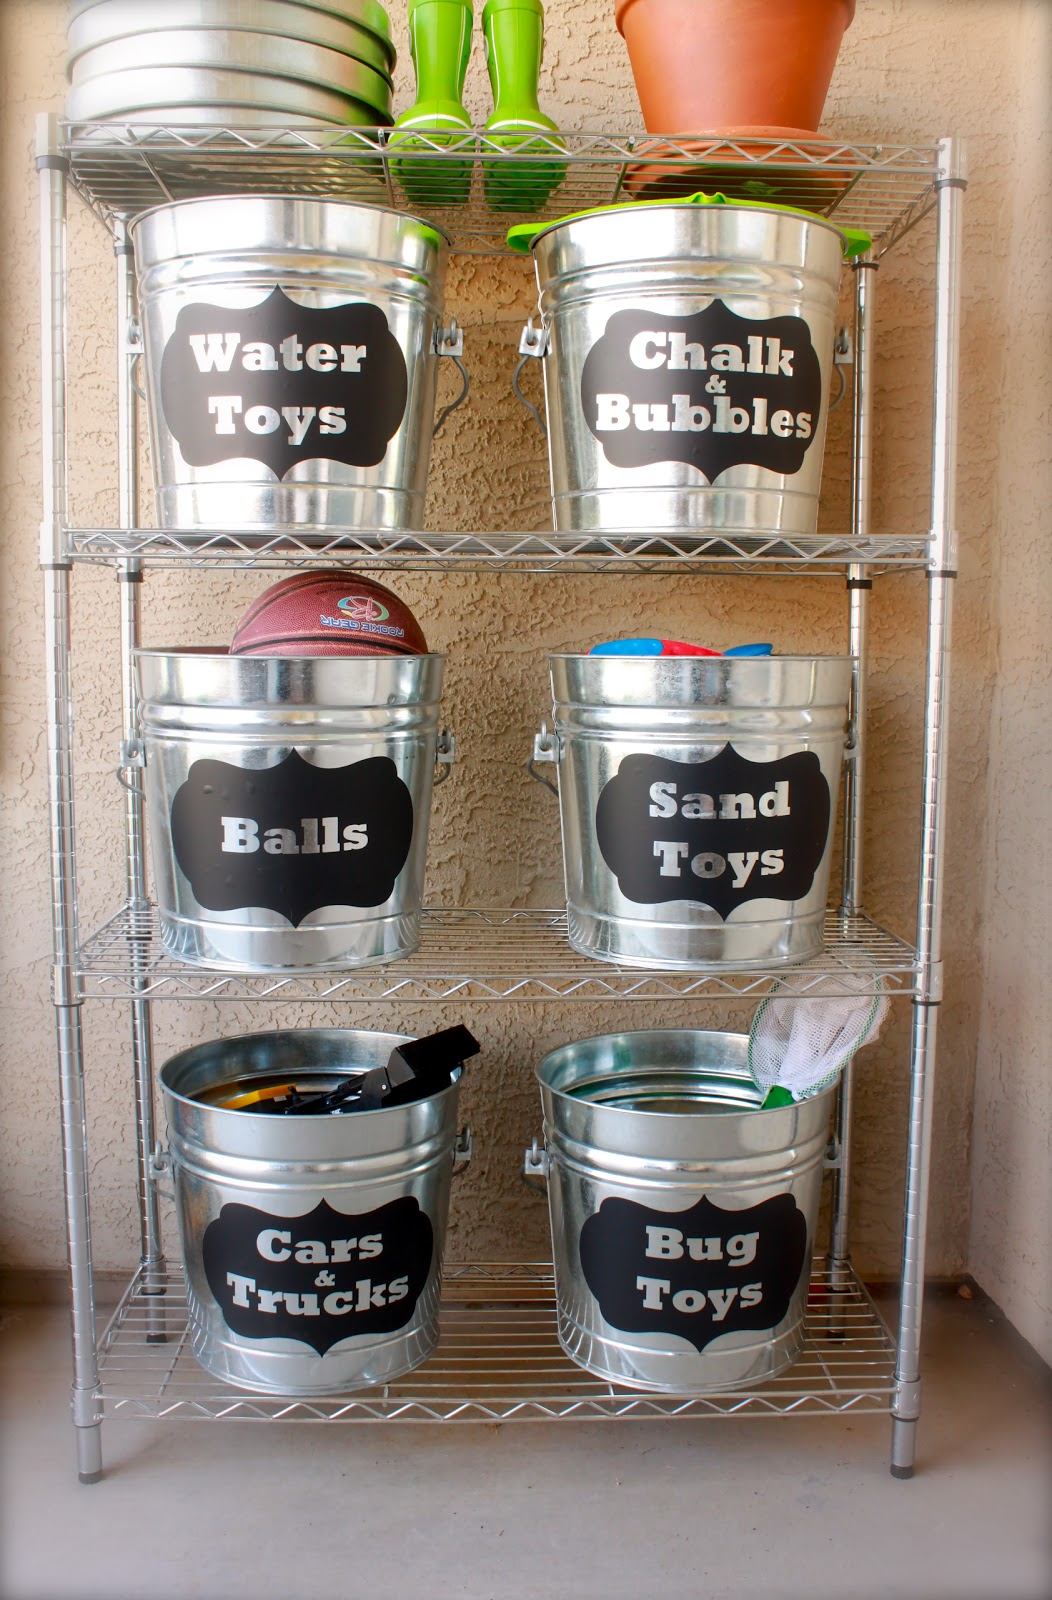 Bucket Outdoor Toy Storage | Extra Space Storage Ideas | Make Your Space Work For You